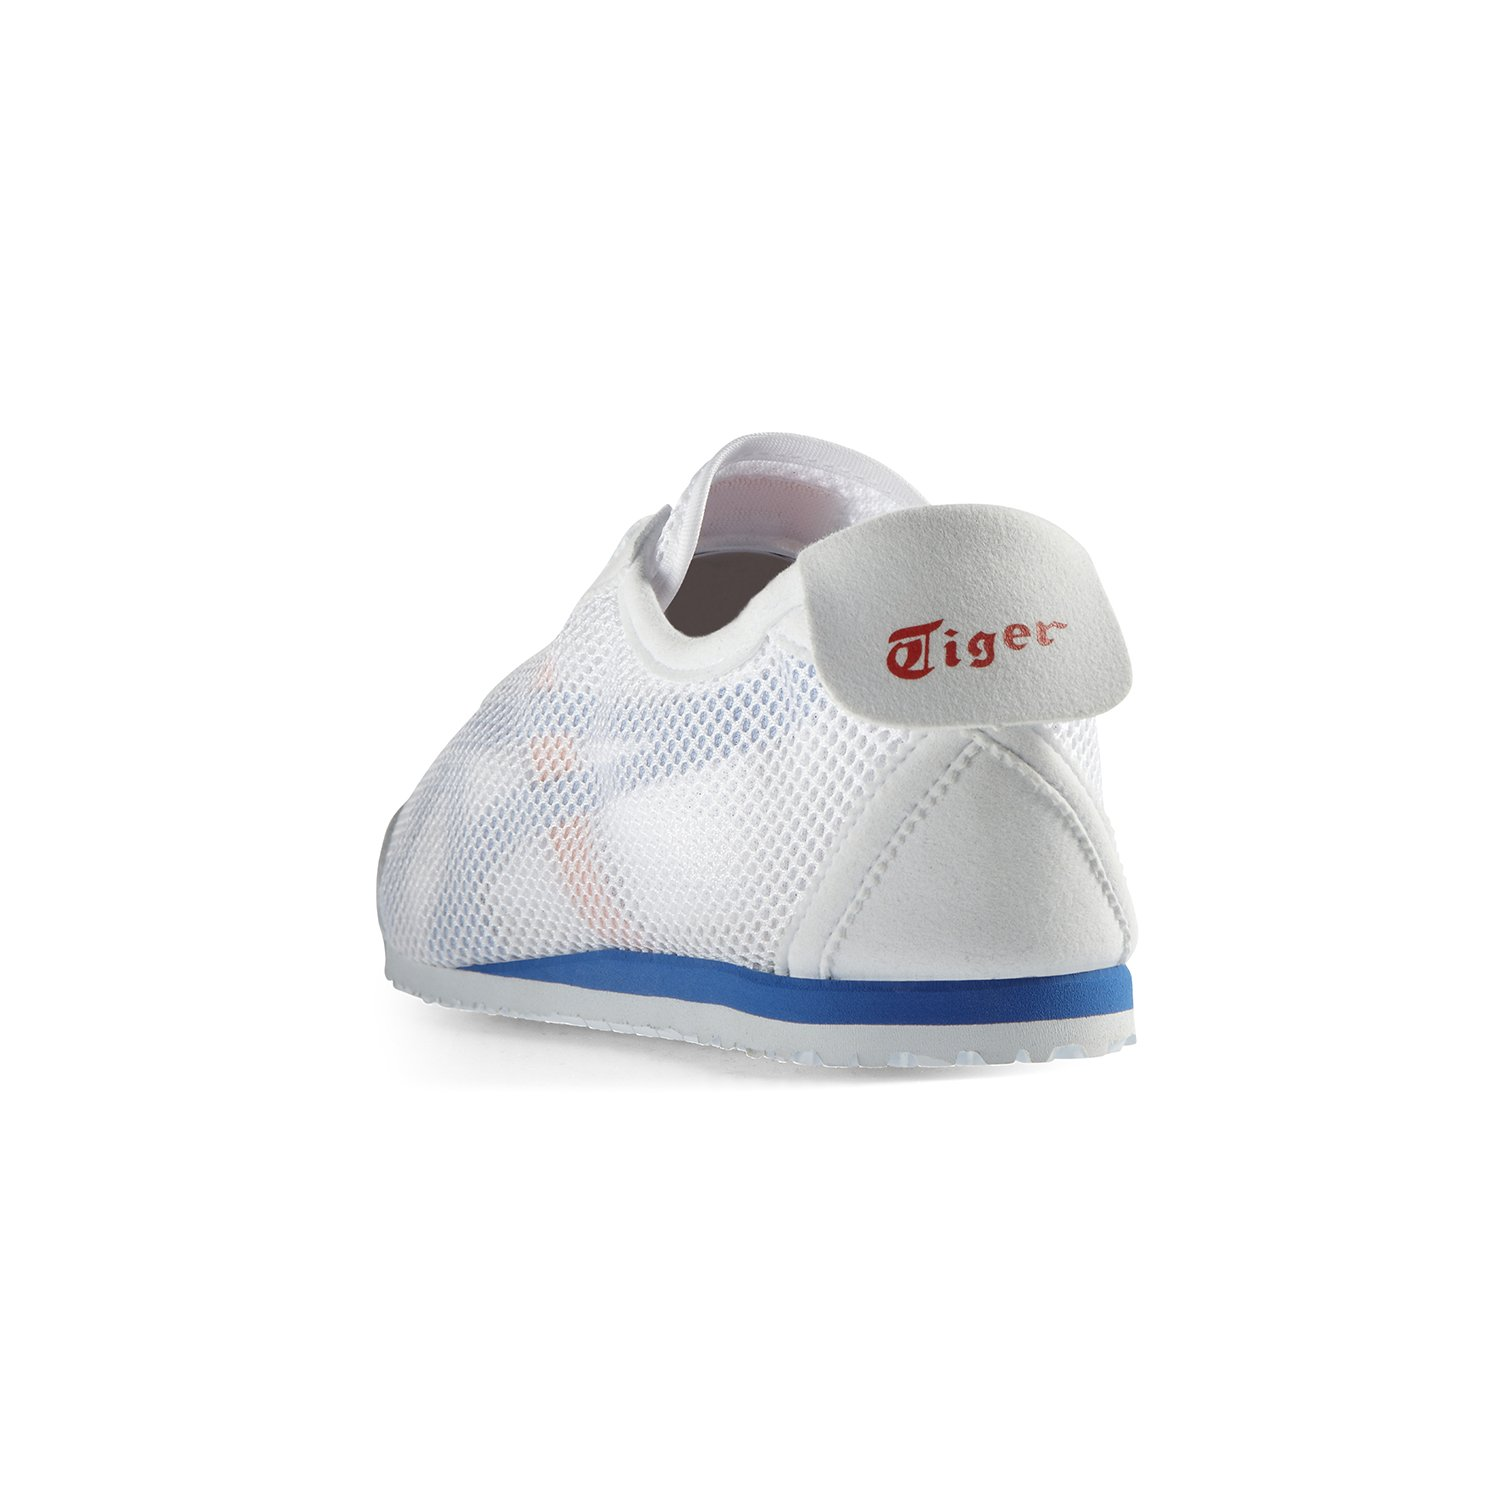 new products 3006a 4f8ba Onitsuka Tiger Mexico 66 Light Mesh Sneaker D508N-0144 ...